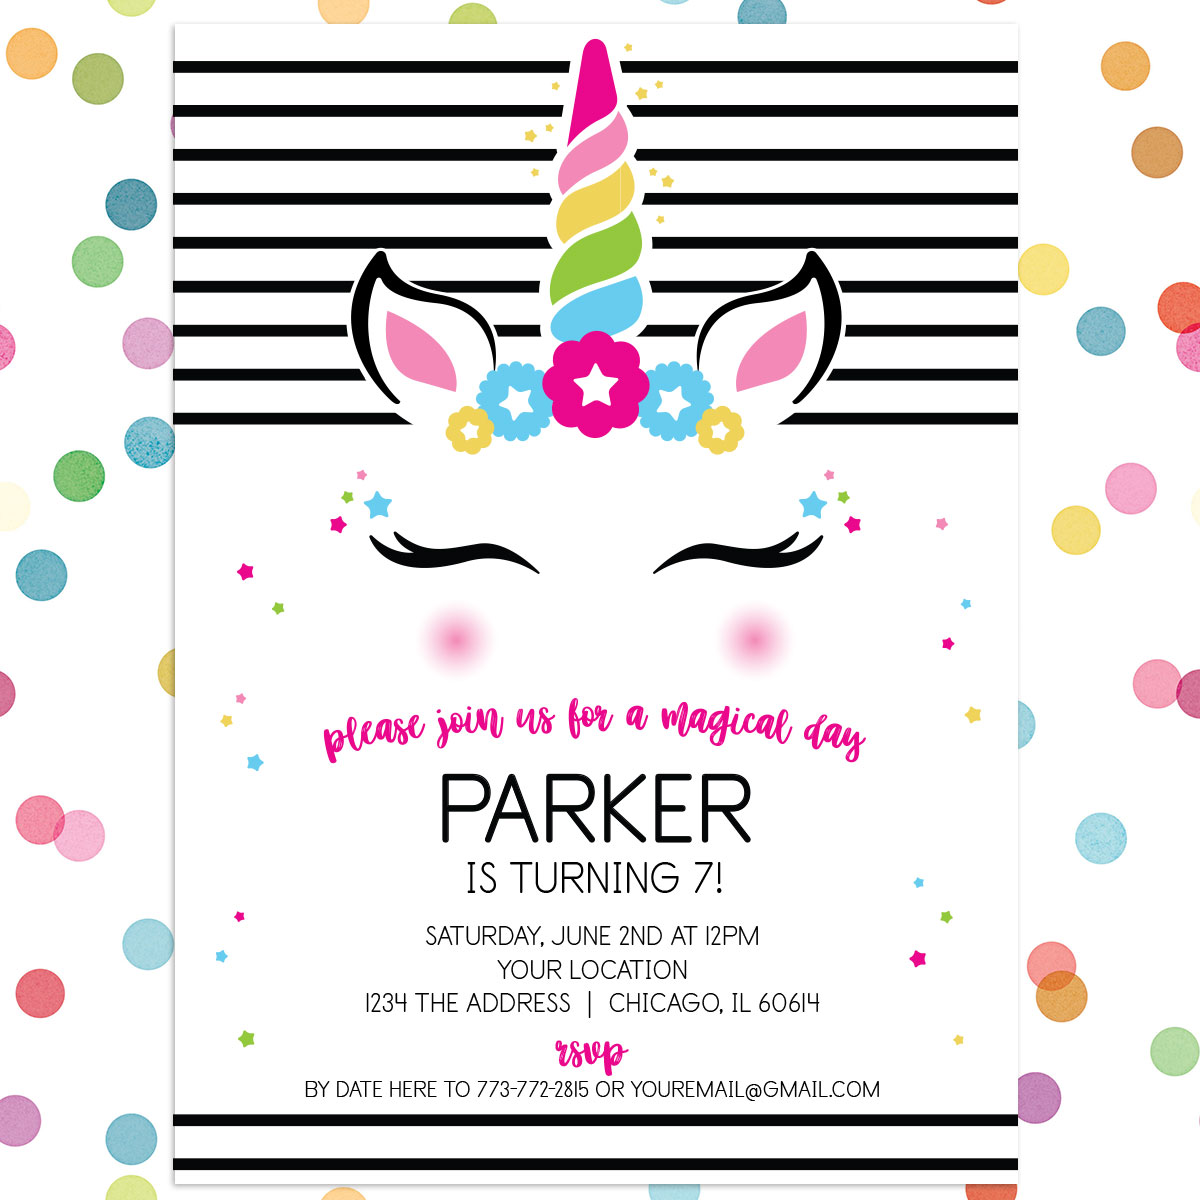 Personalized Kids Birthday Invitation Magical Mod Unicorn